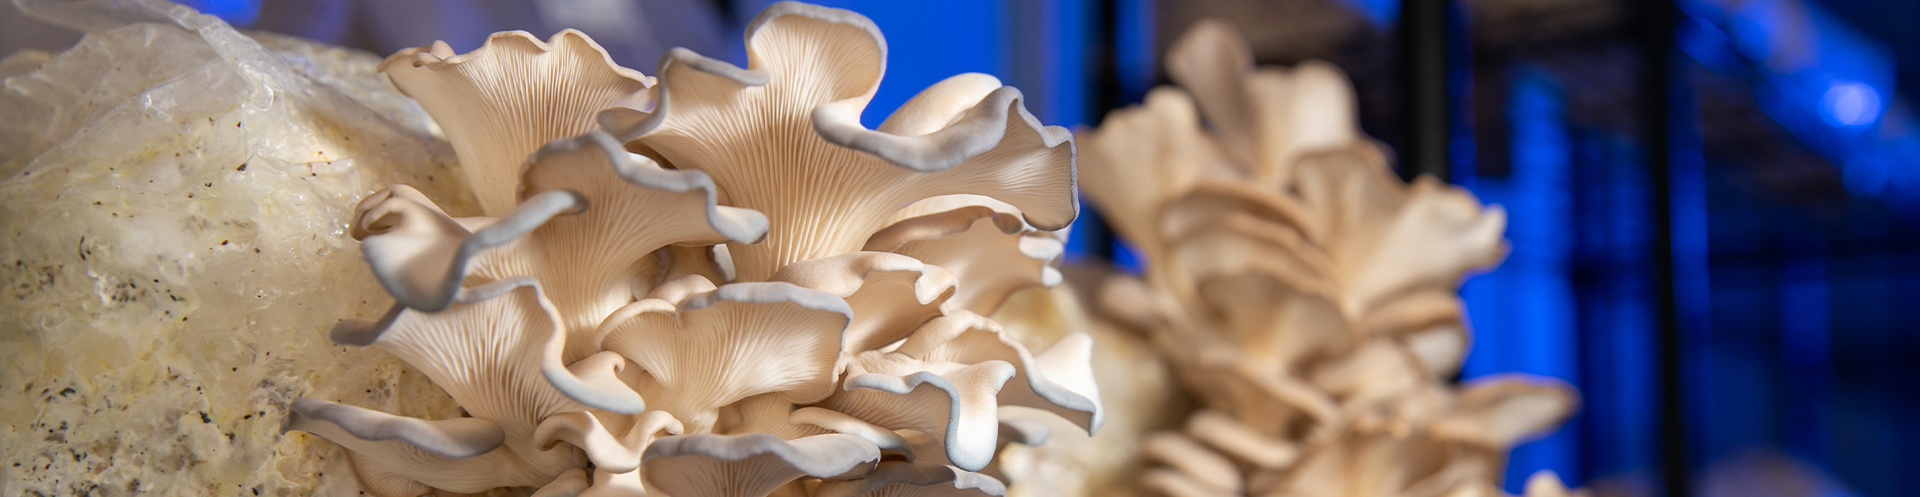 Mushrooms and Microbiology